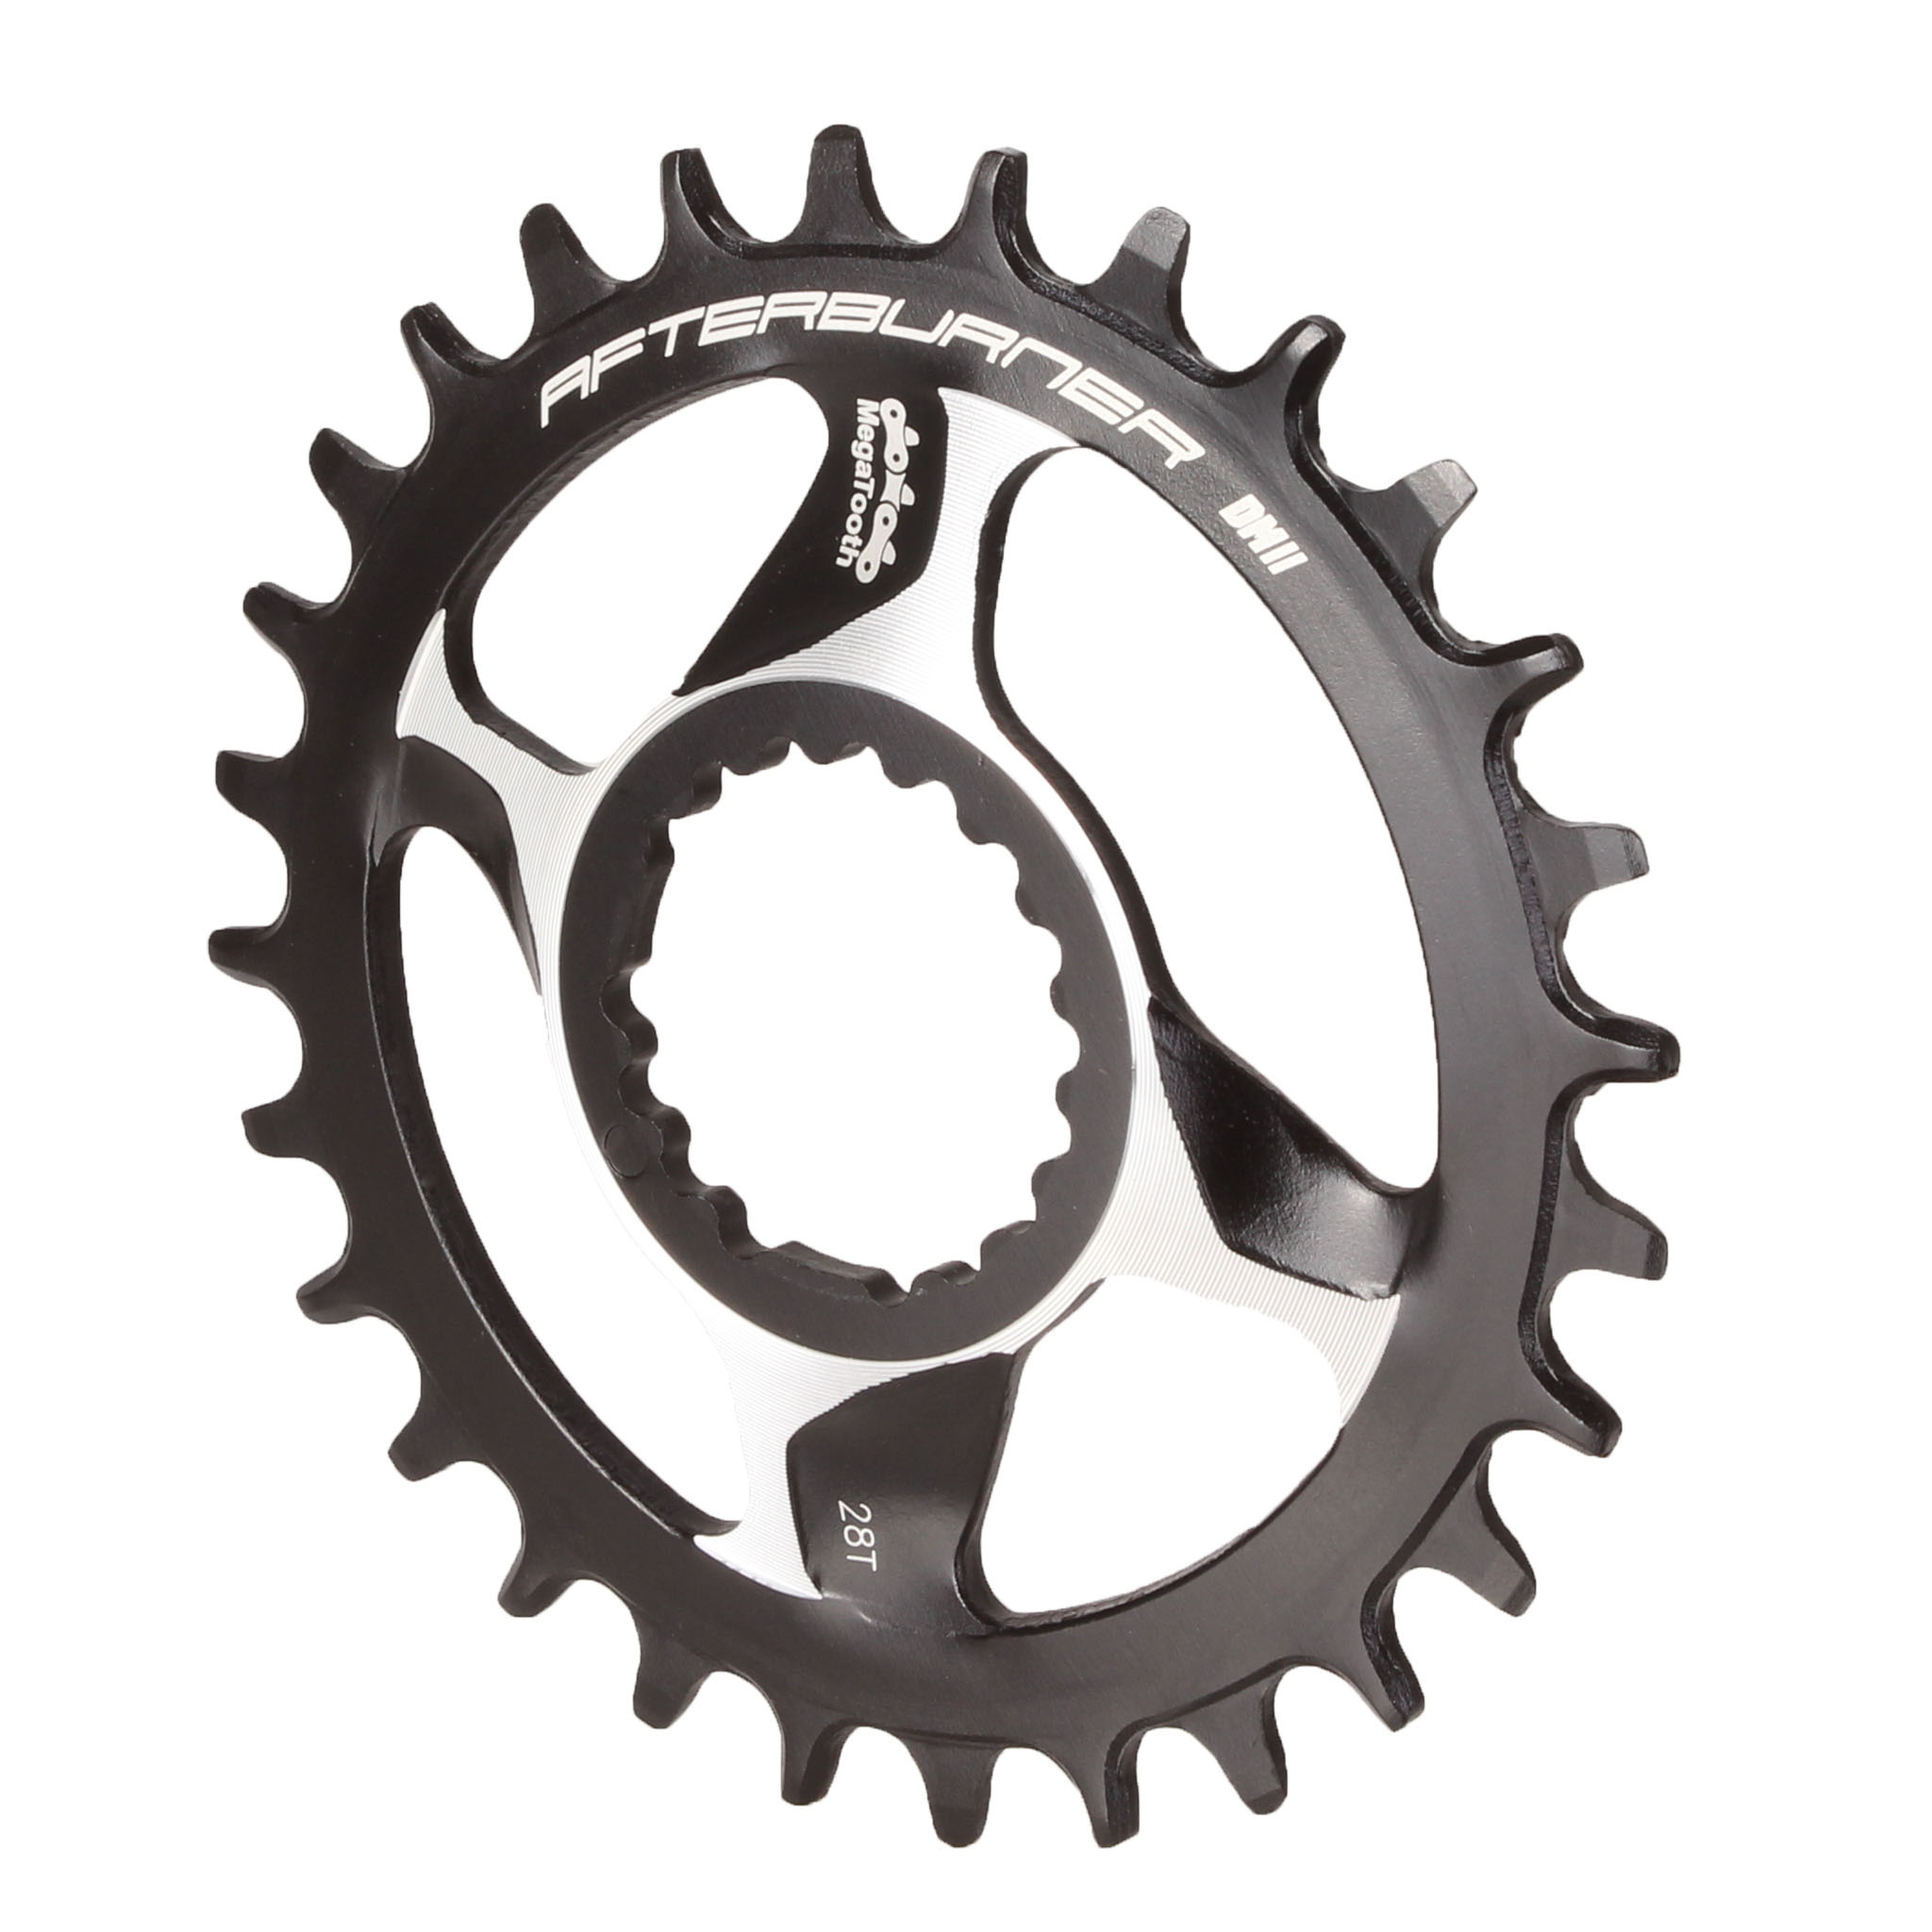 FSA Afterburner Chainring Direct-Mount Megatooth 11-Speed 34t